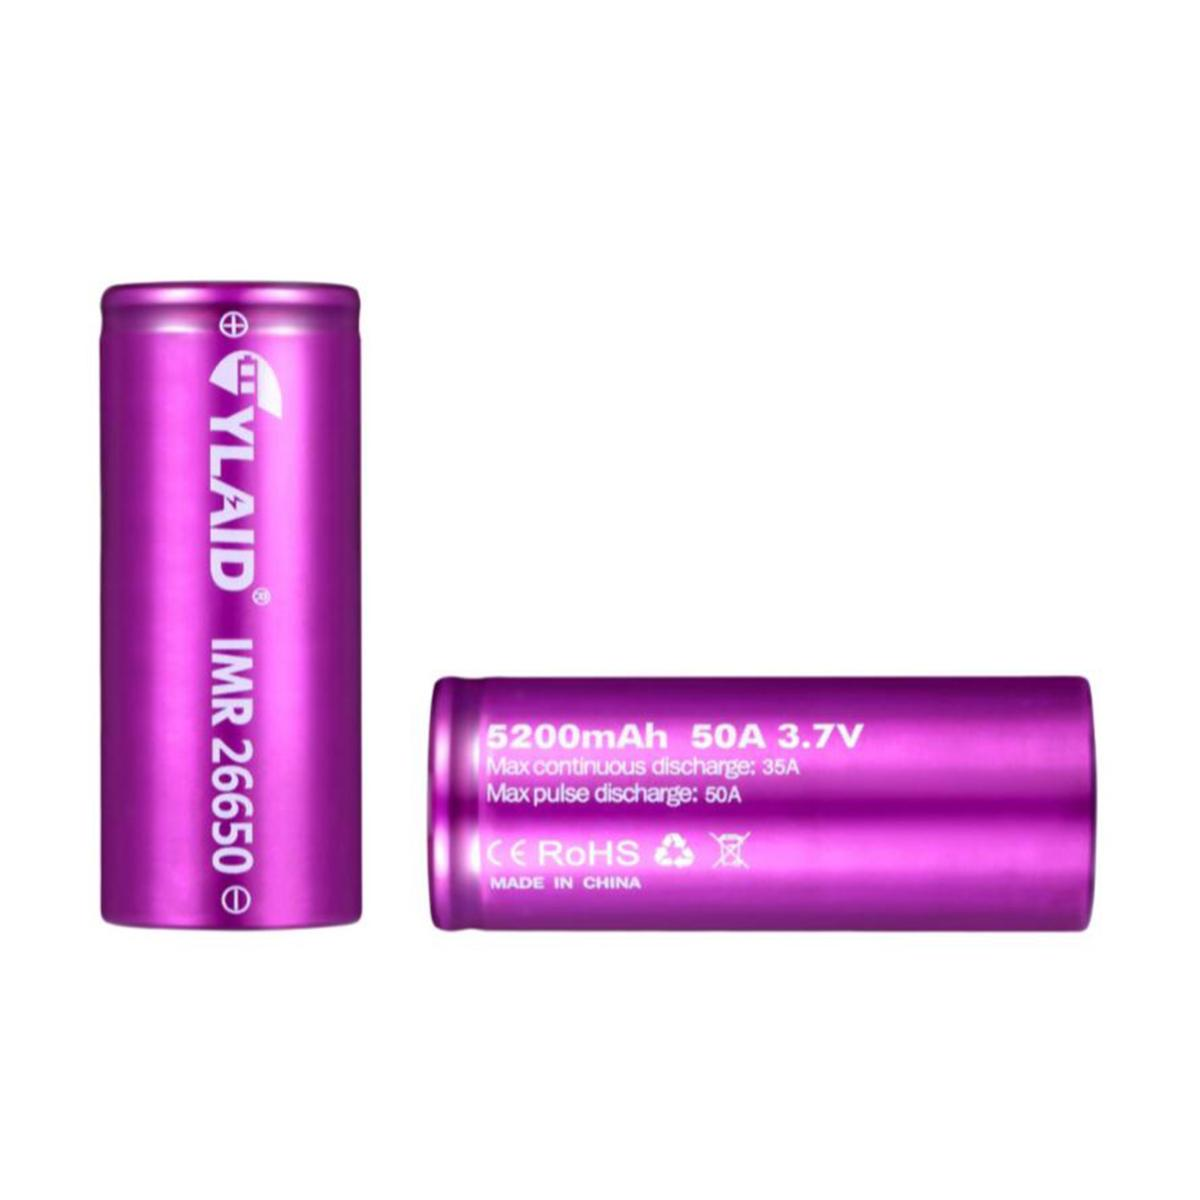 Pin sạc Cylaid 26650 5200mAh 50A for Mech and Boxes mods